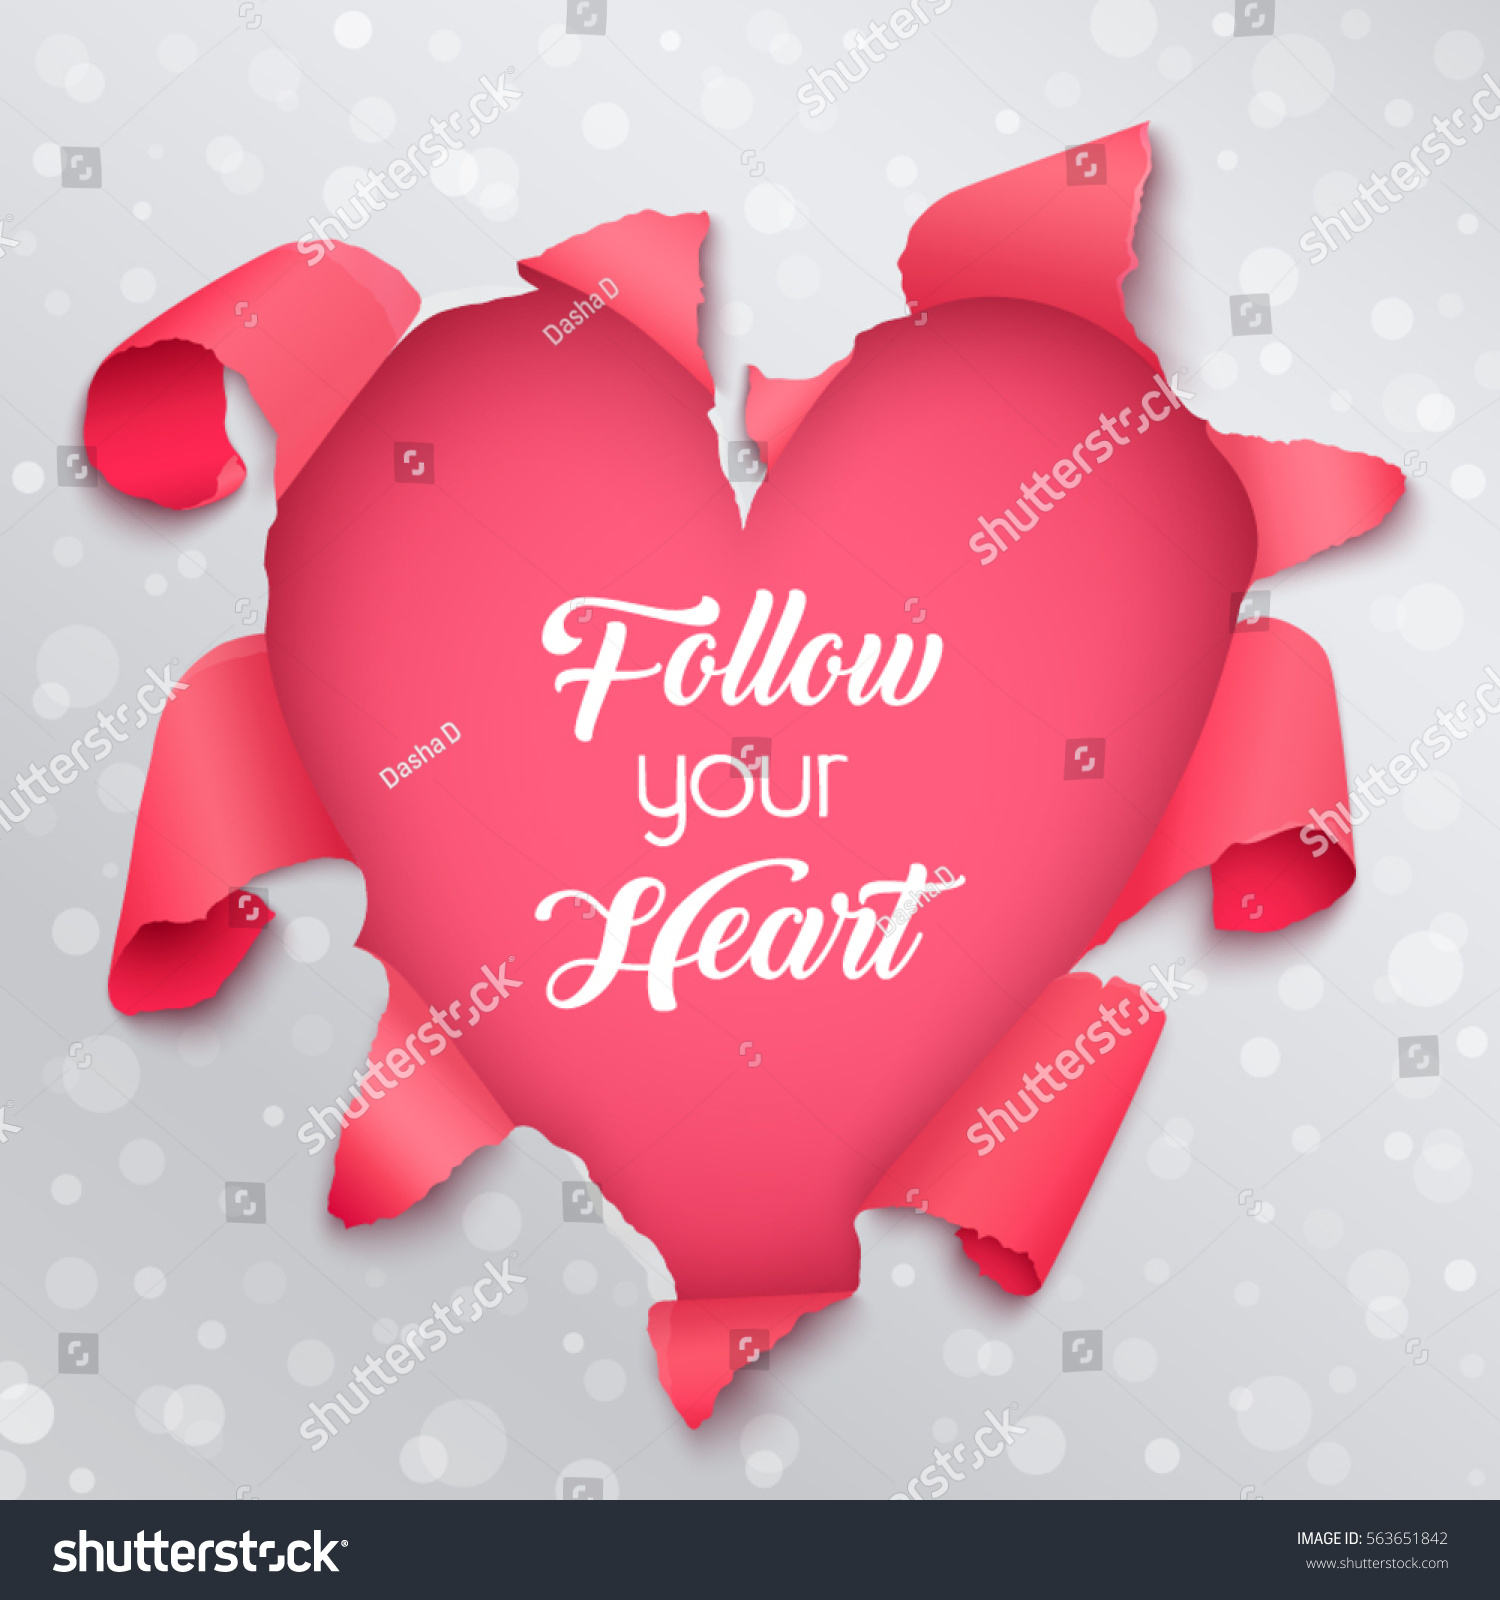 Follow Your Heart Valentines Greeting Card Stock Vector 563651842